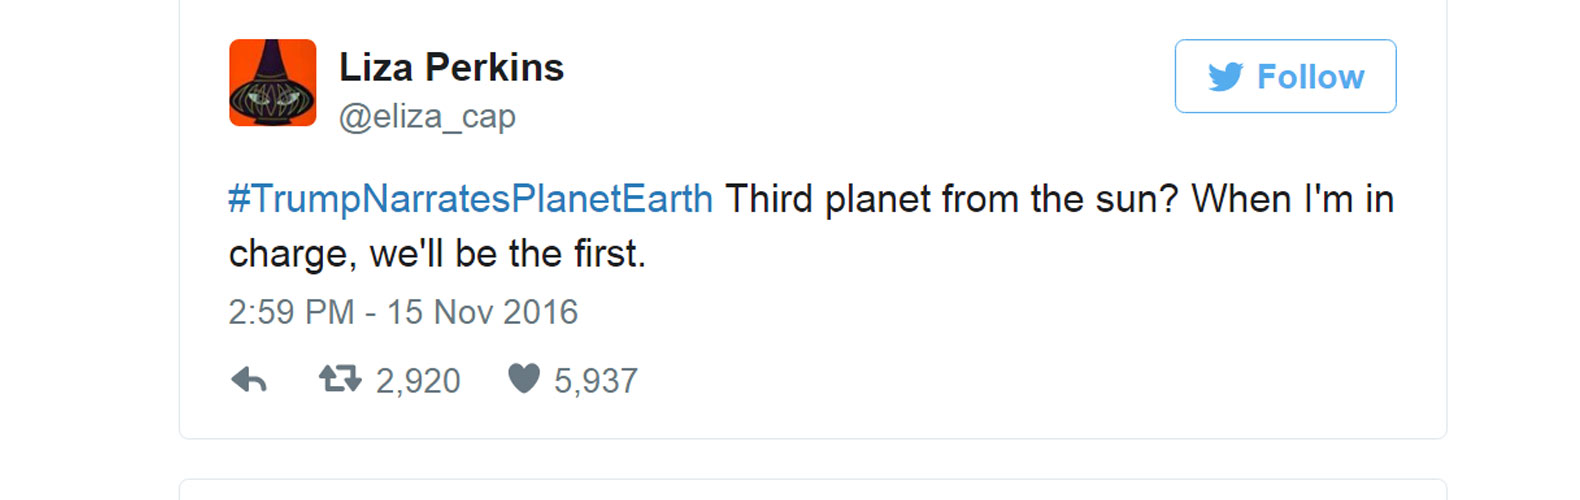 #TrumpNarratesPlanetEarth, Climate Change, planet earth, Trump climate change, Trump environment, Trump Narrates Planet Earth